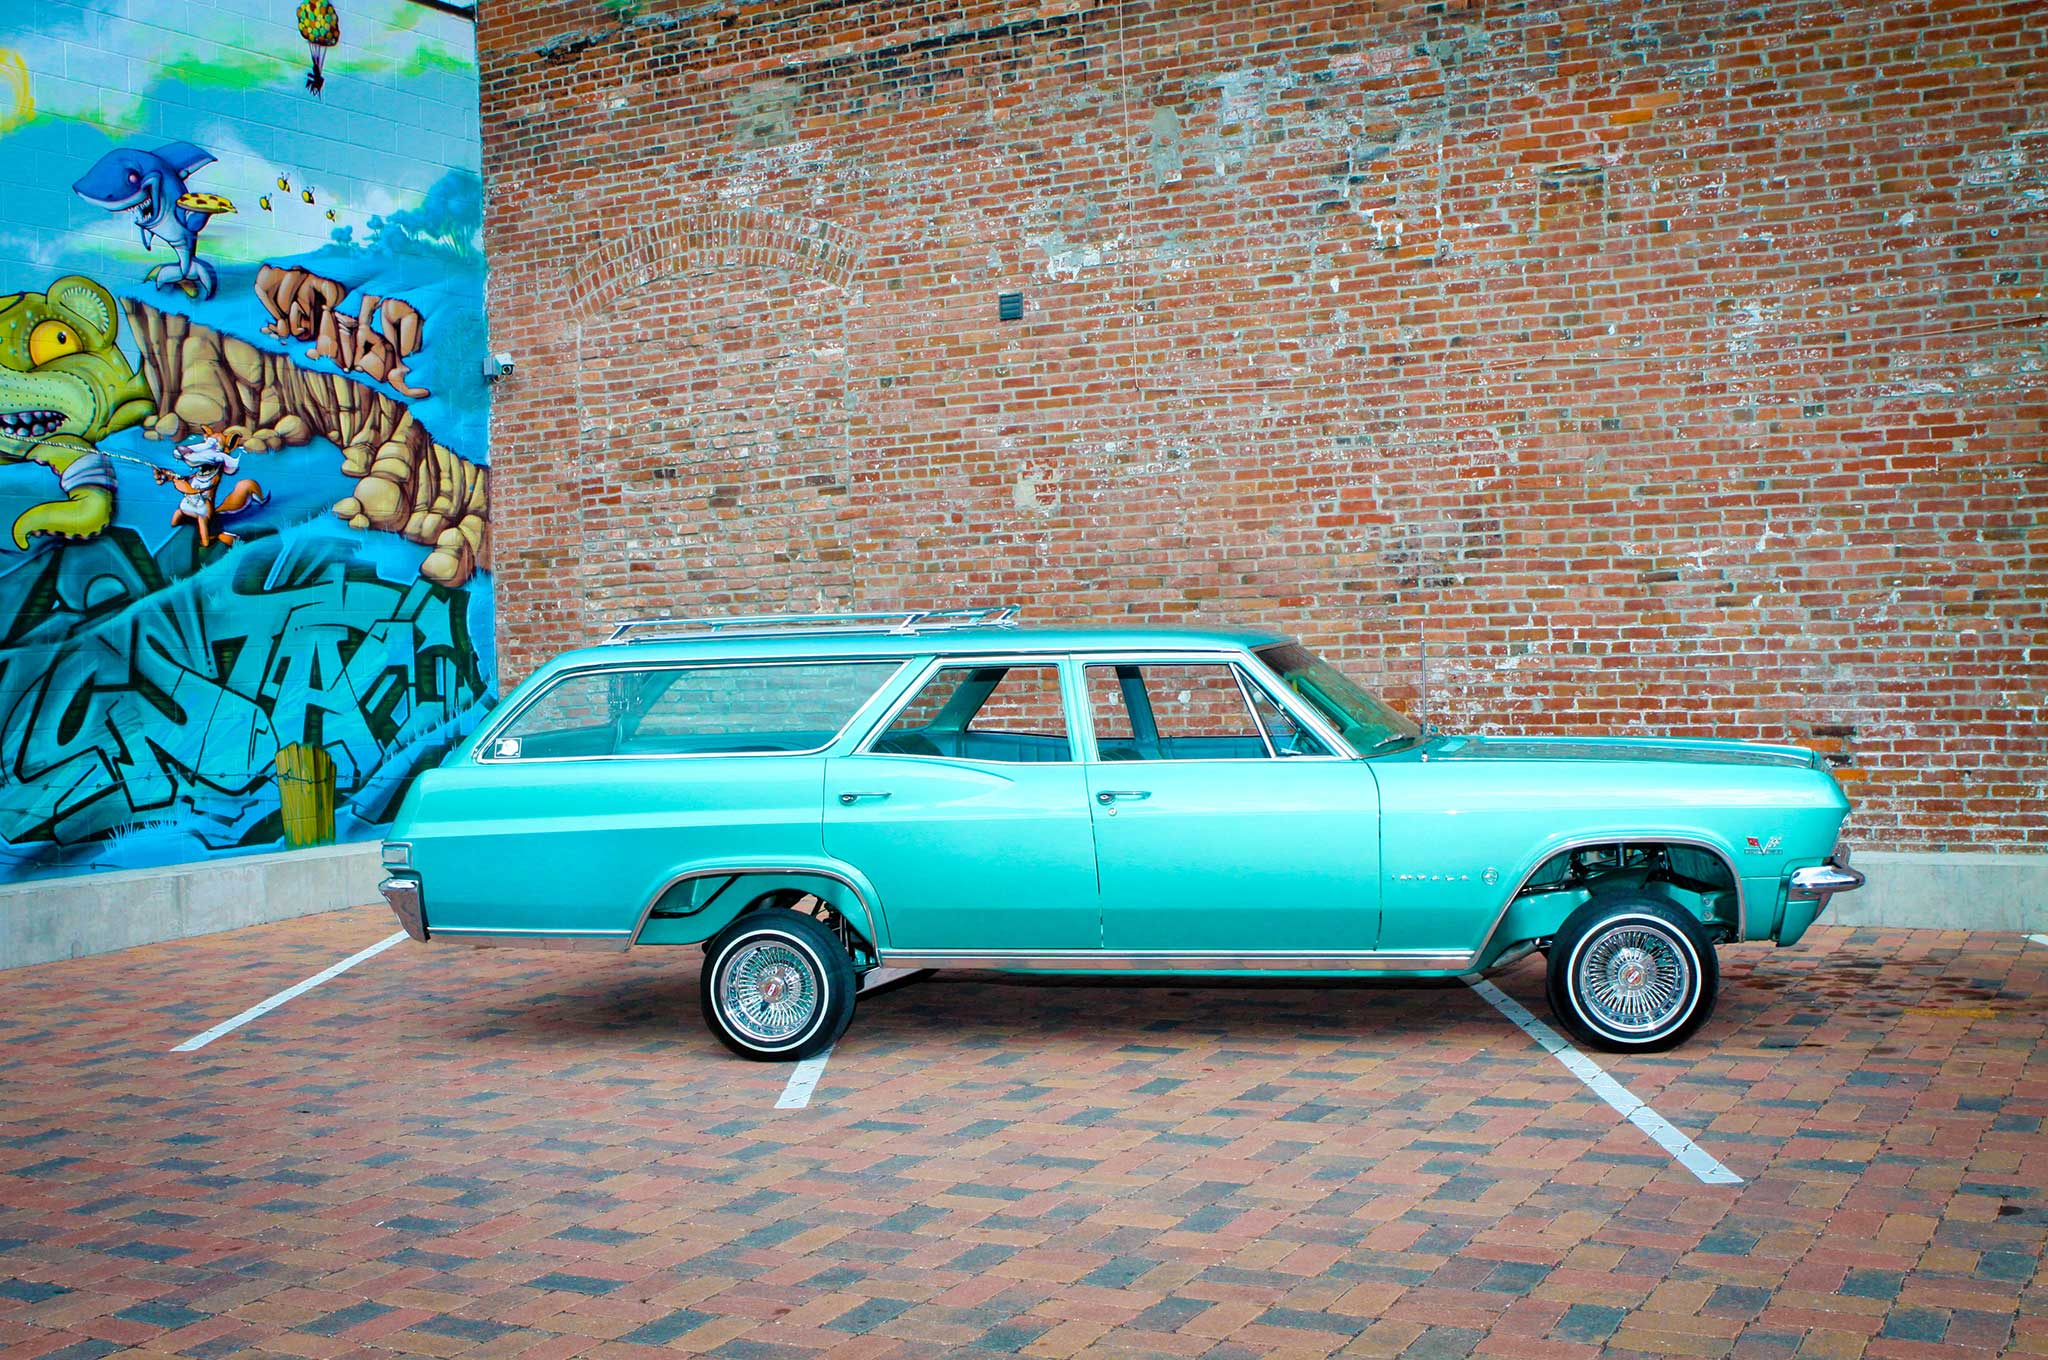 1965 Chevrolet Impala Wagon - Outside the Box - Lowrider